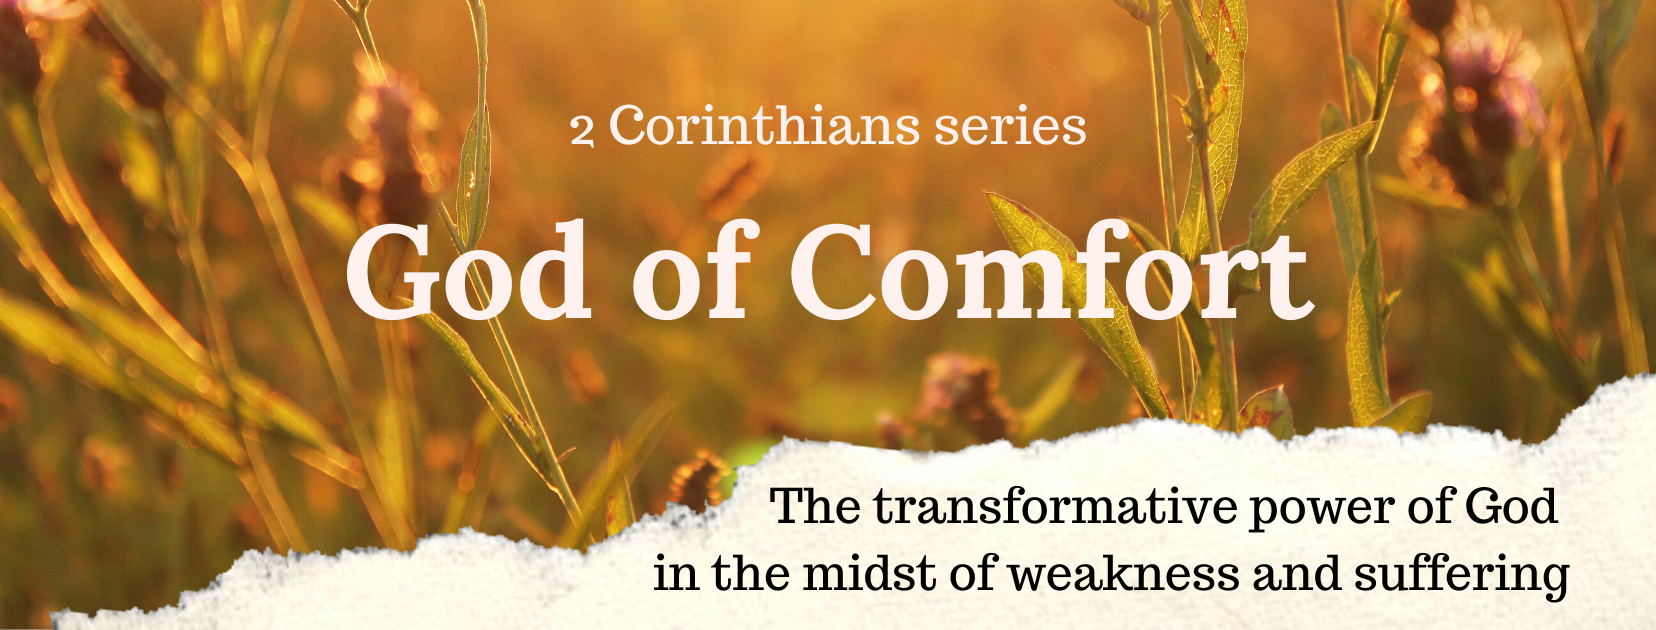 God of Comfort Series Facebook cover